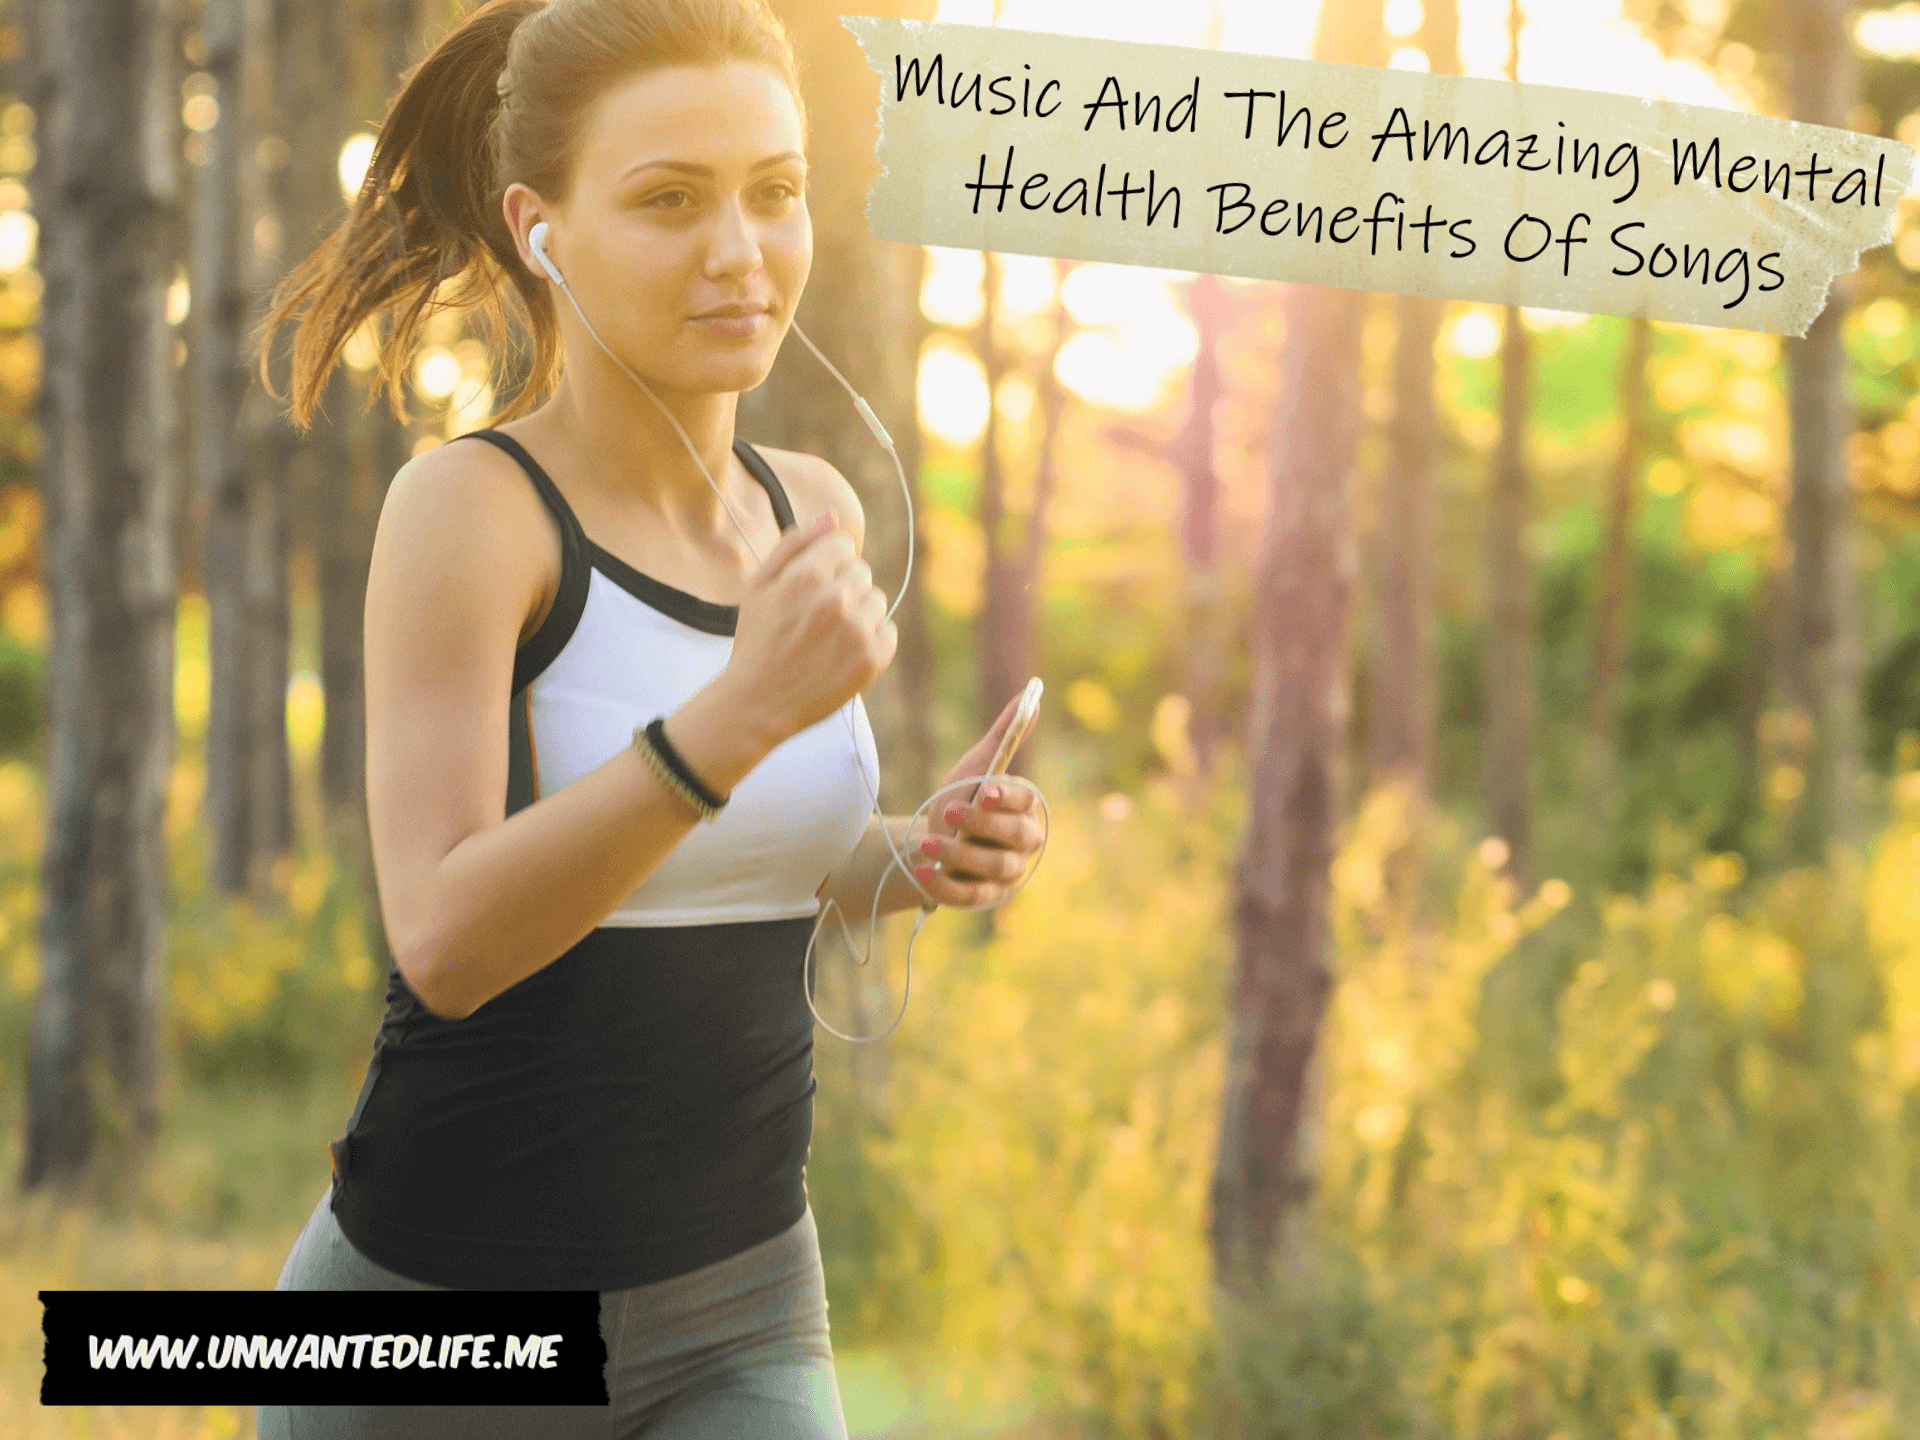 A photo of a white woman jogging through the woods listening to her MP3 player to represent the topic of the article - Music And The Amazing Mental Health Benefits Of Songs